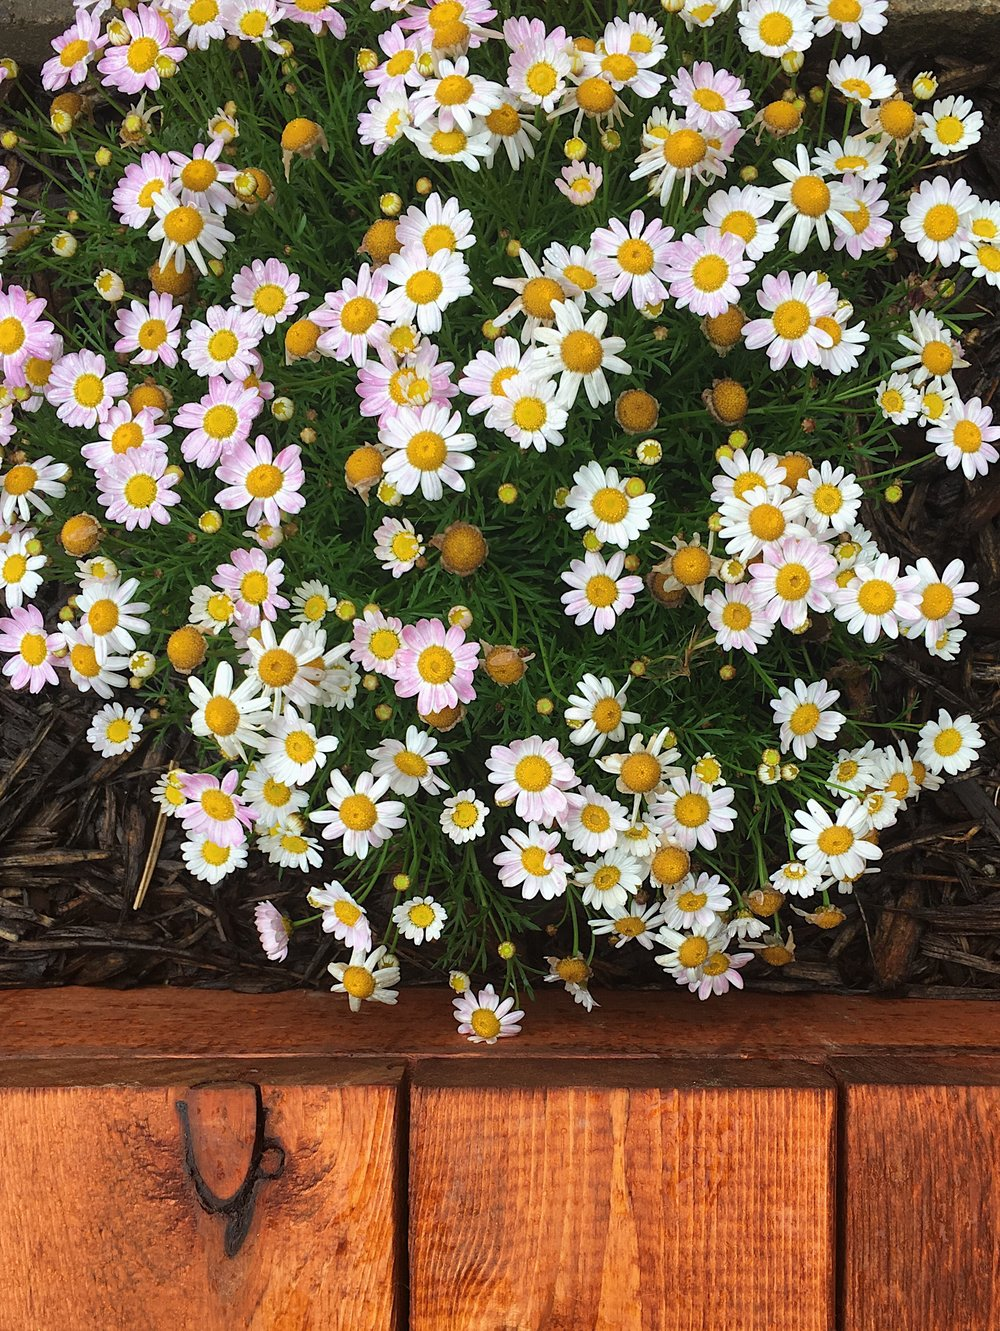 The color changing daisies!